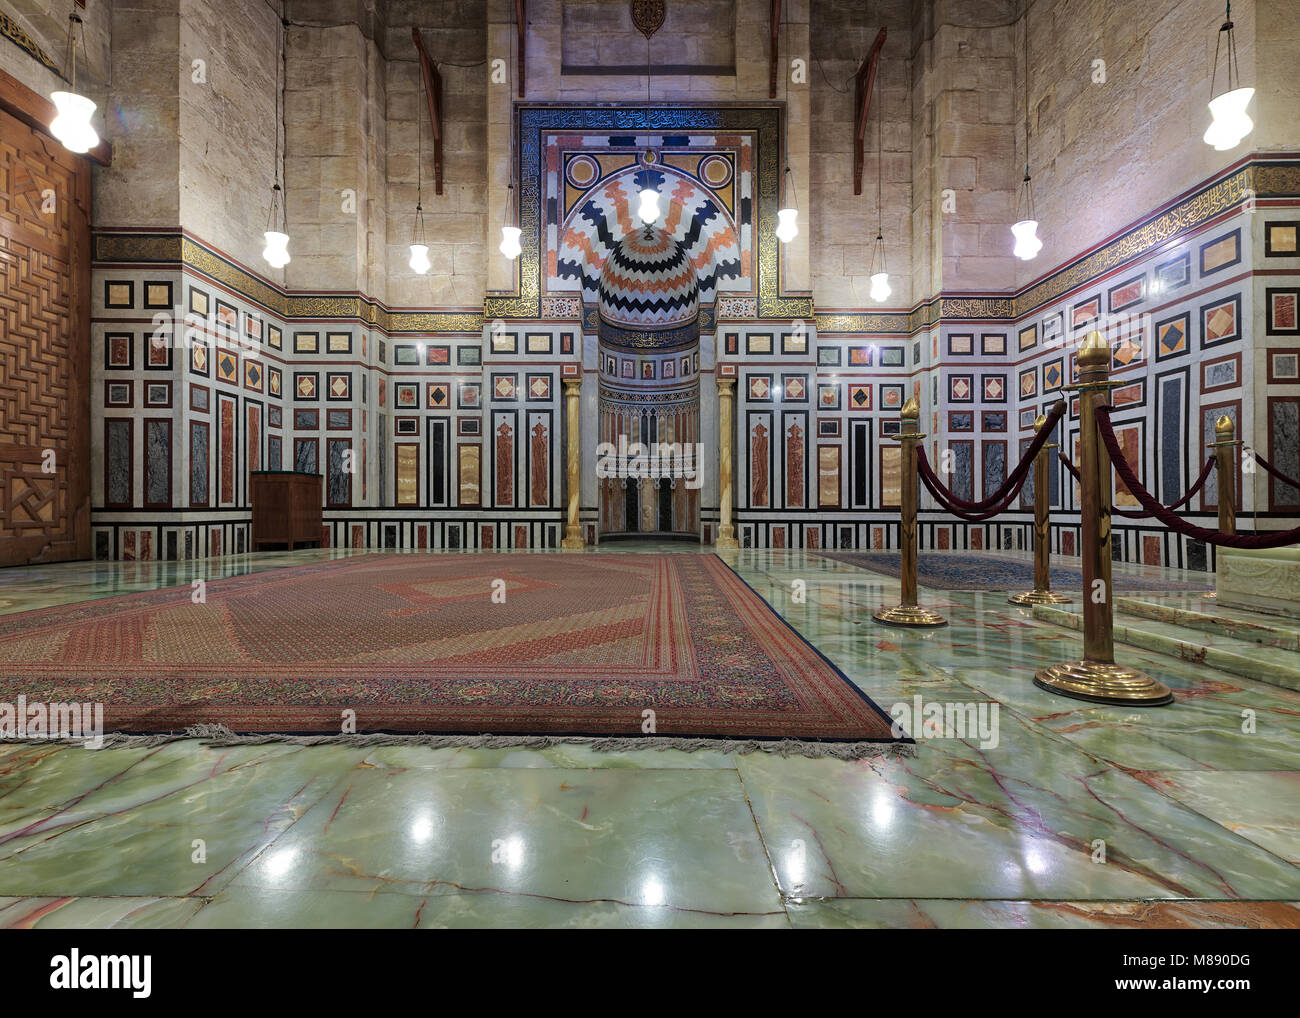 Cairo, Egypt - December 16, 2017: Interior of the tomb of the Reza Shah of Iran, Al Rifaii Mosque (Royal Mosque), - Stock Image